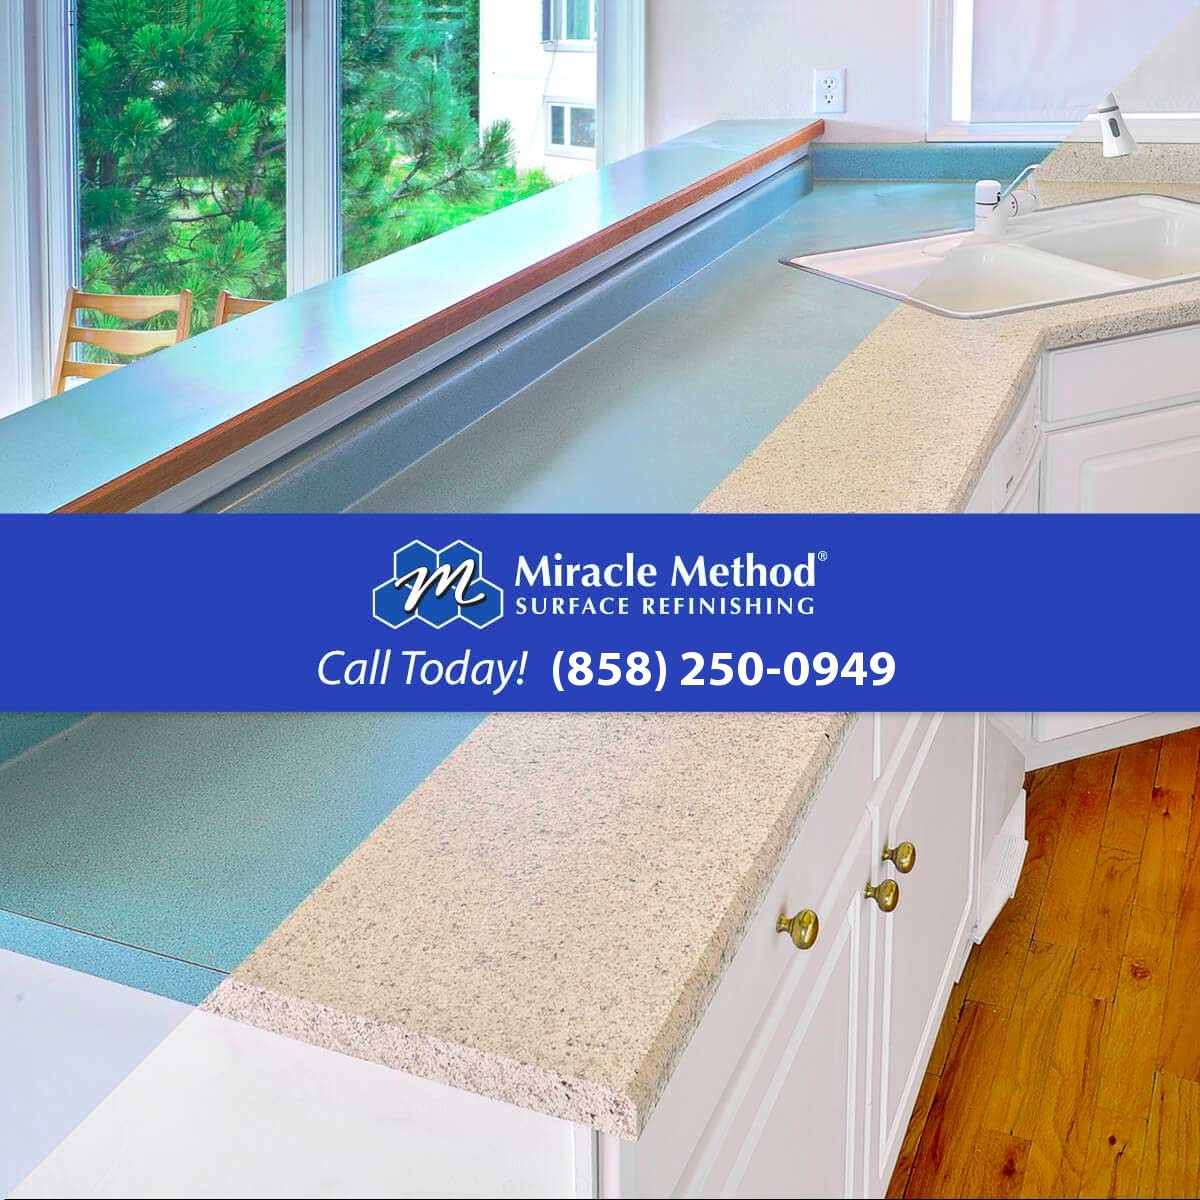 Surface refinishing miracle method san diego for O kitchen mira mesa